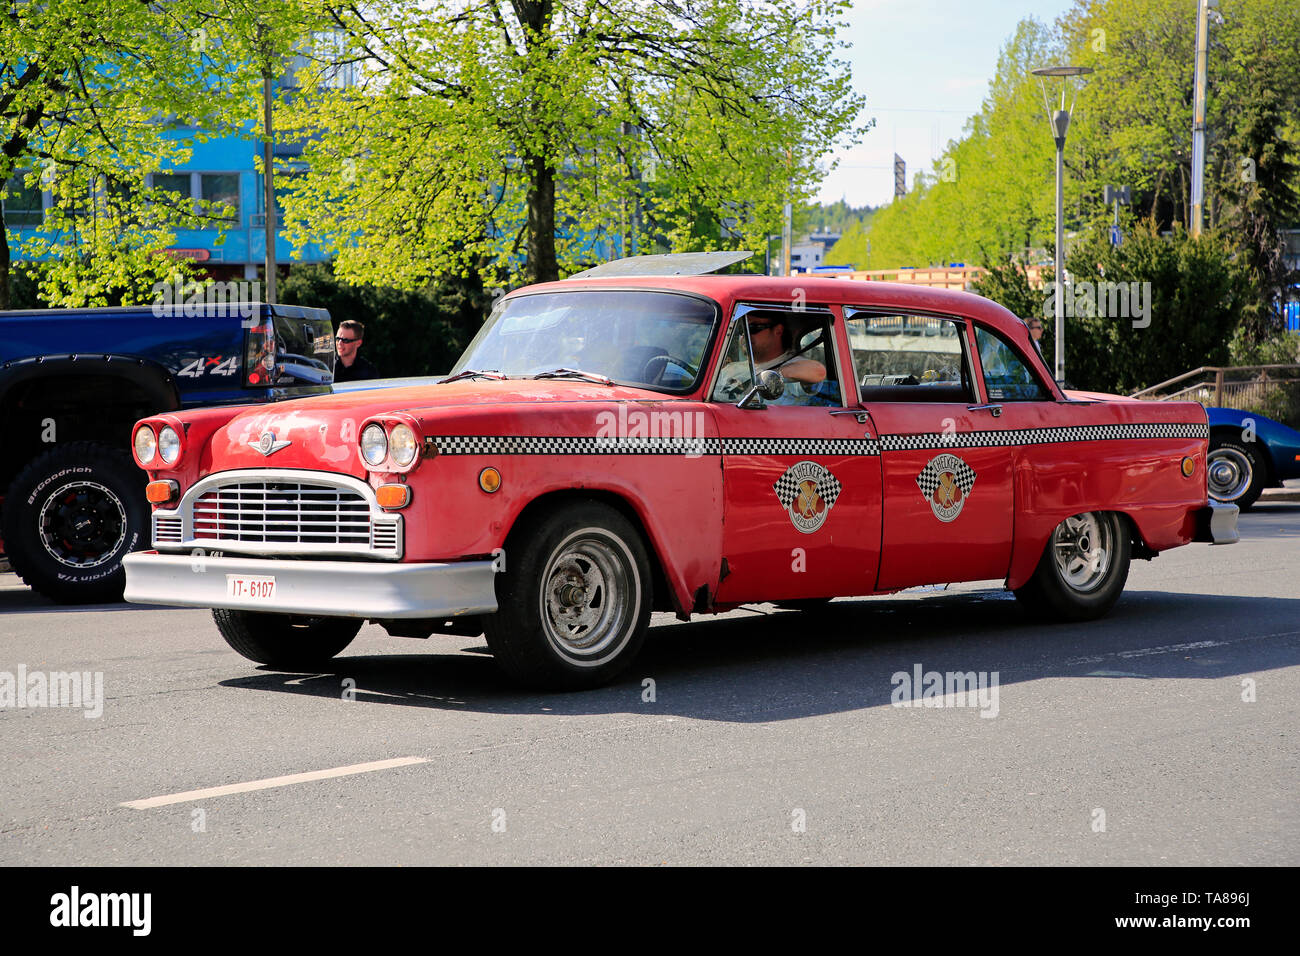 Salo, Finland. May 18, 2019. Red Checker Model A Taxi takes part in Salon Maisema Cruising 2019. - Stock Image